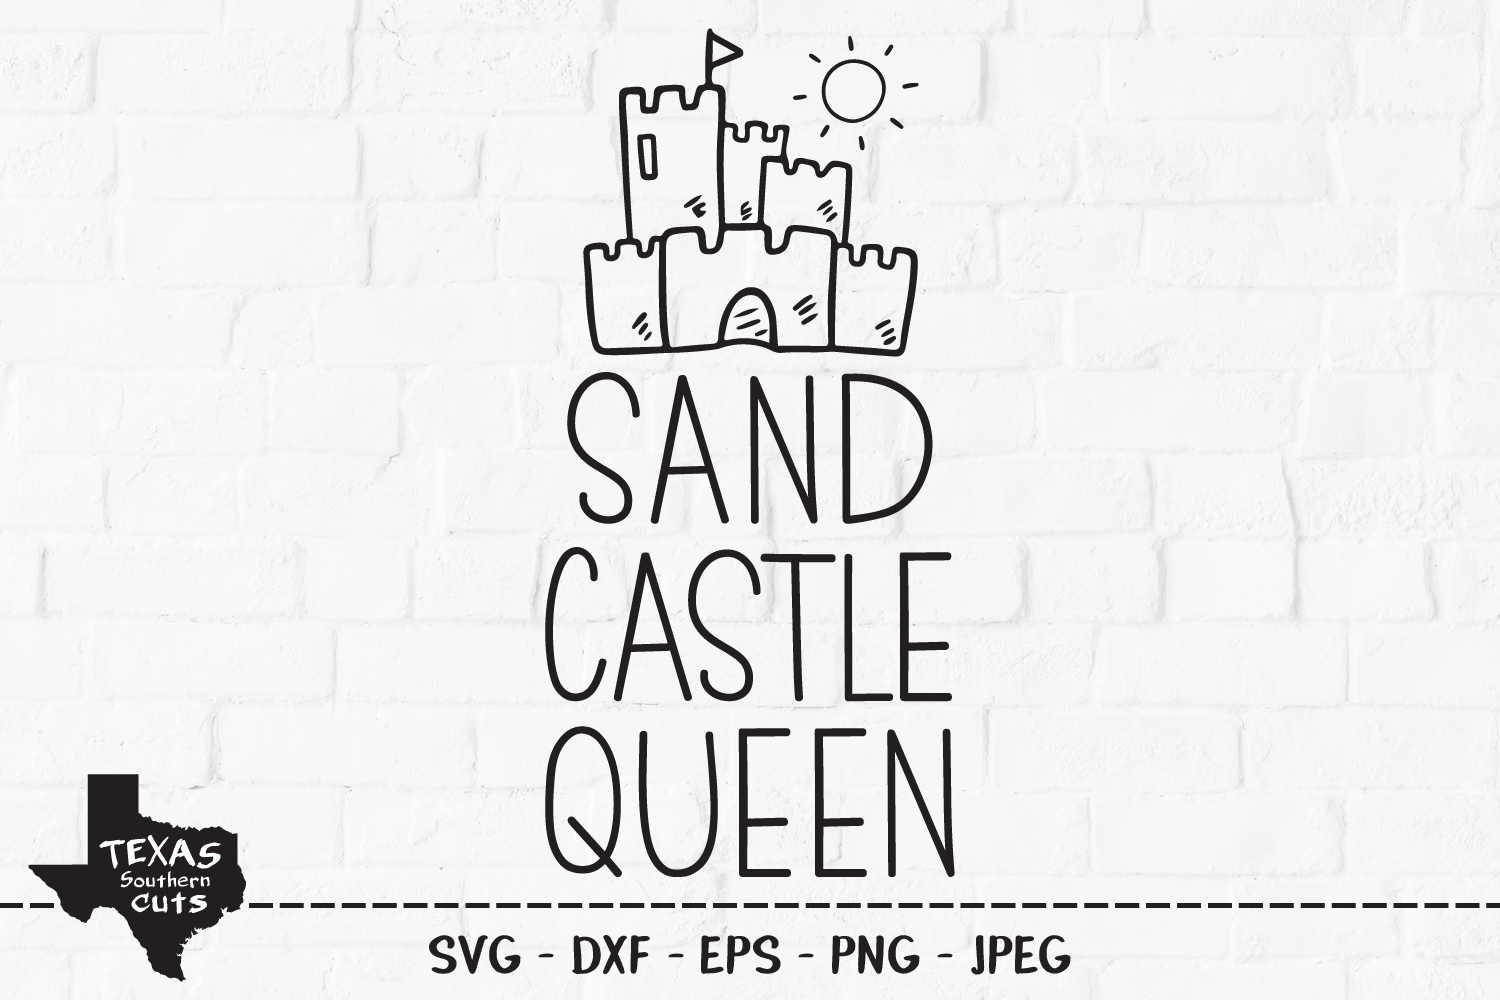 Download Free Sand Castle Queen Summer Design Graphic By Texassoutherncuts for Cricut Explore, Silhouette and other cutting machines.